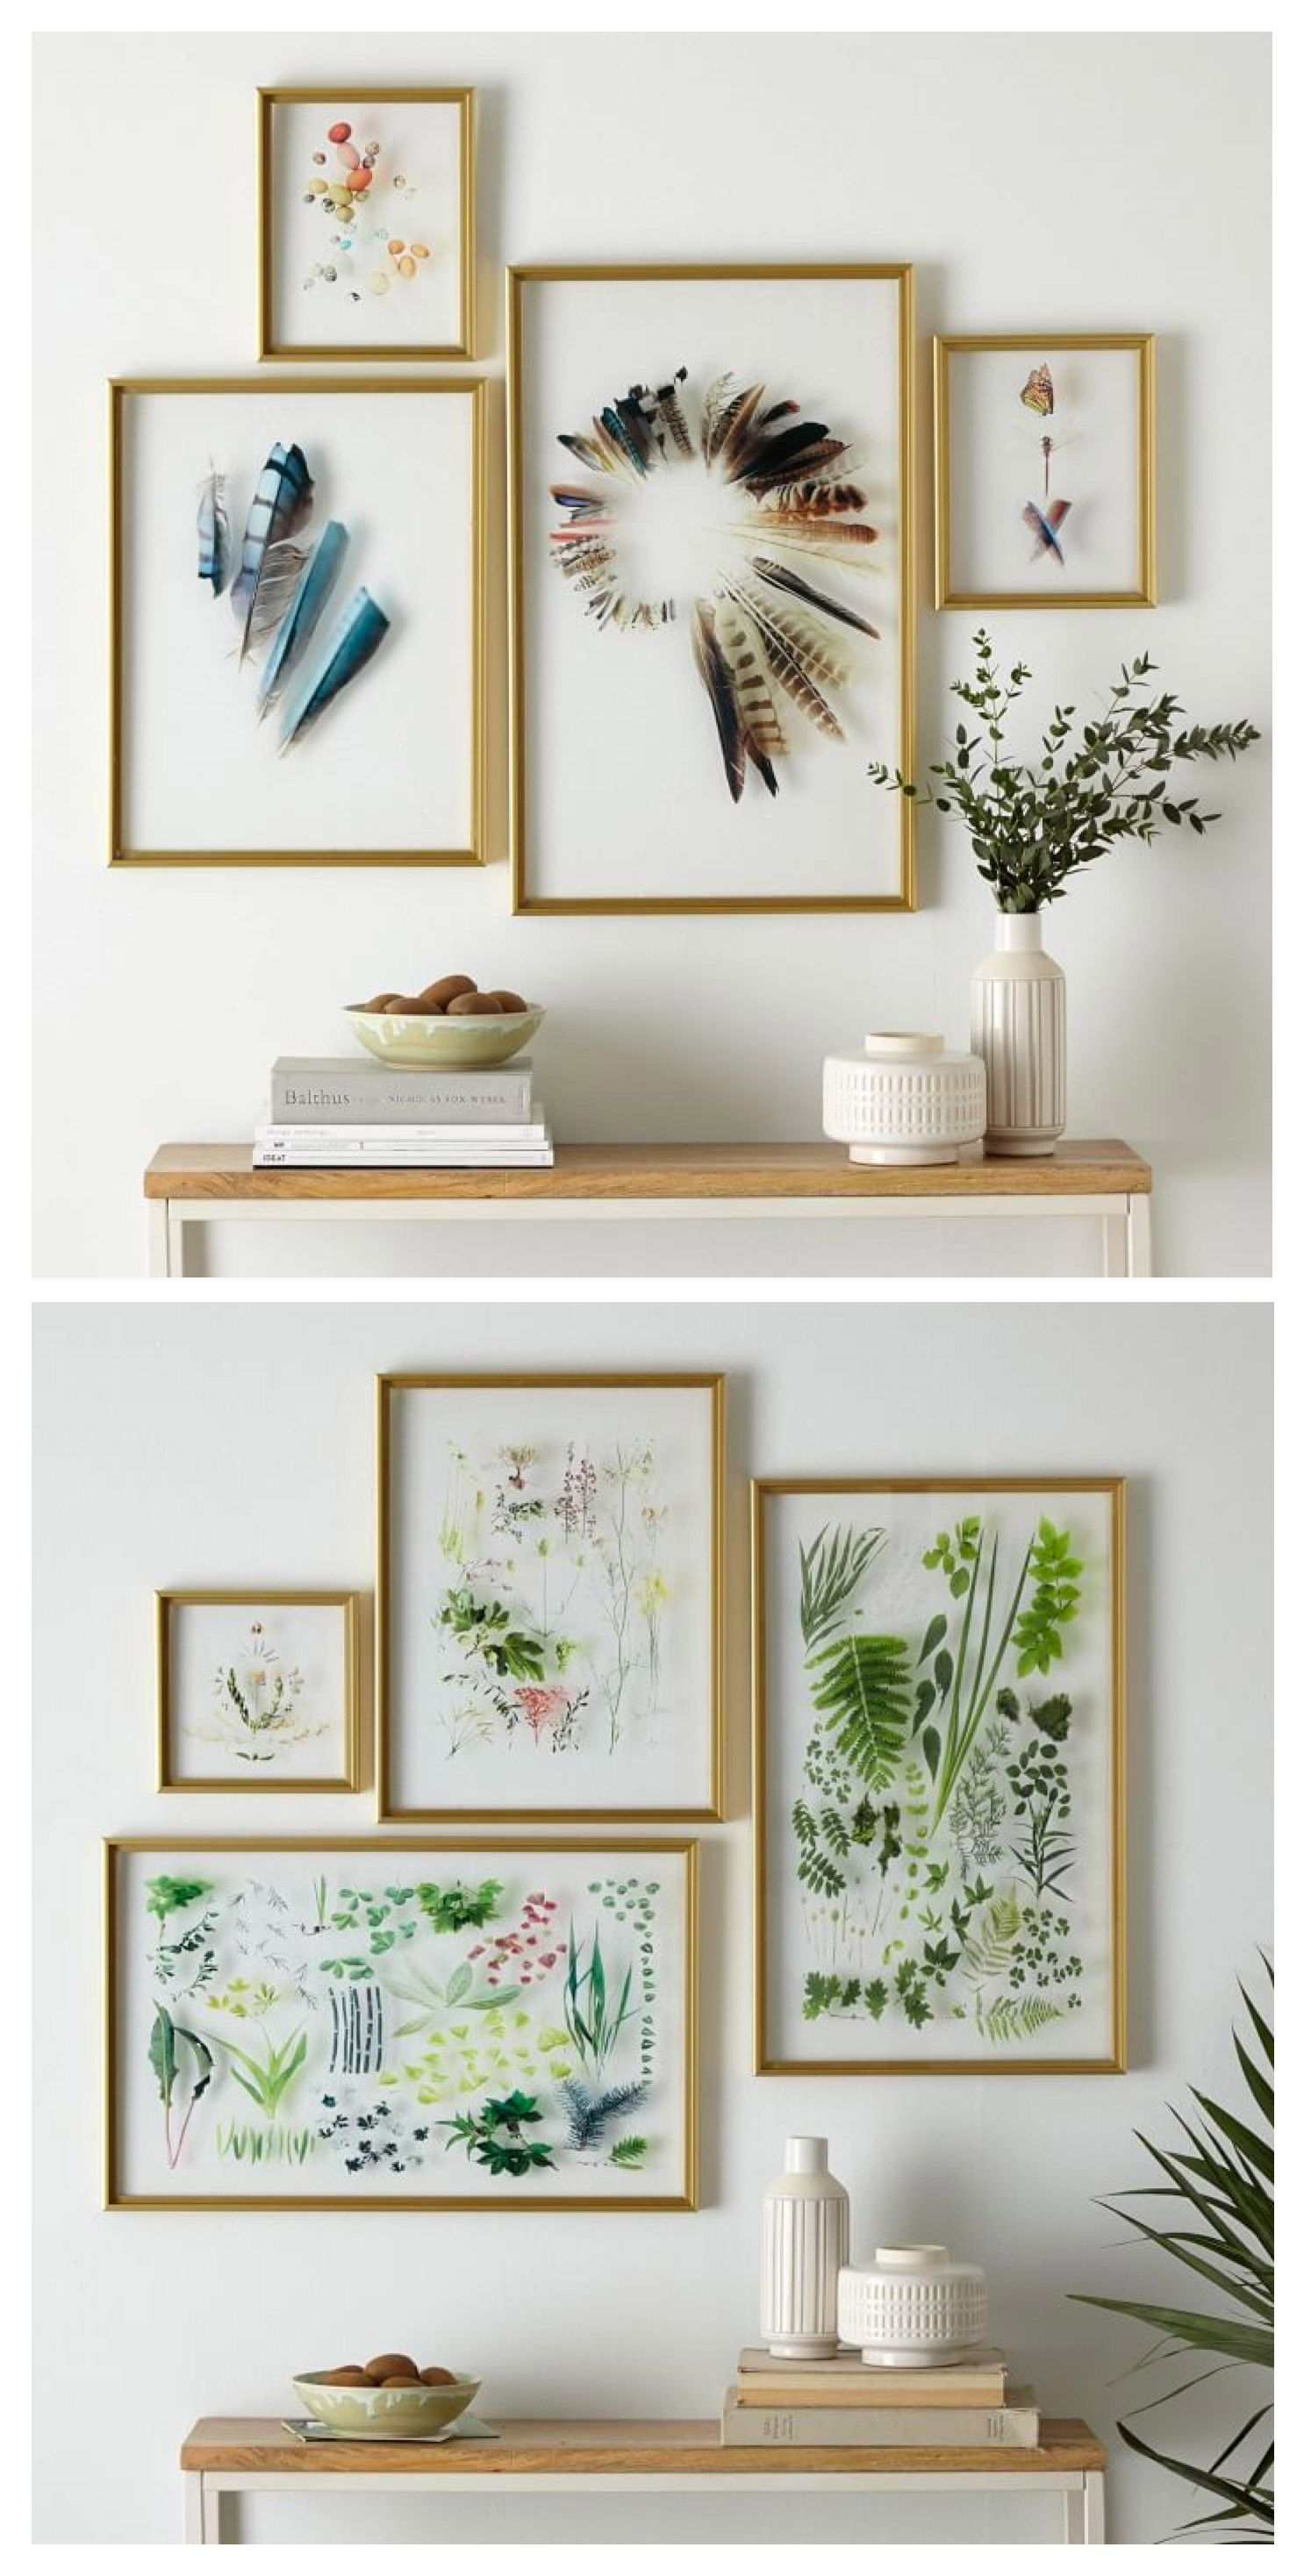 Still Acrylic Wall Art – Spring Botanicals | A Bit About Me Within West Elm Wall Art (View 8 of 20)